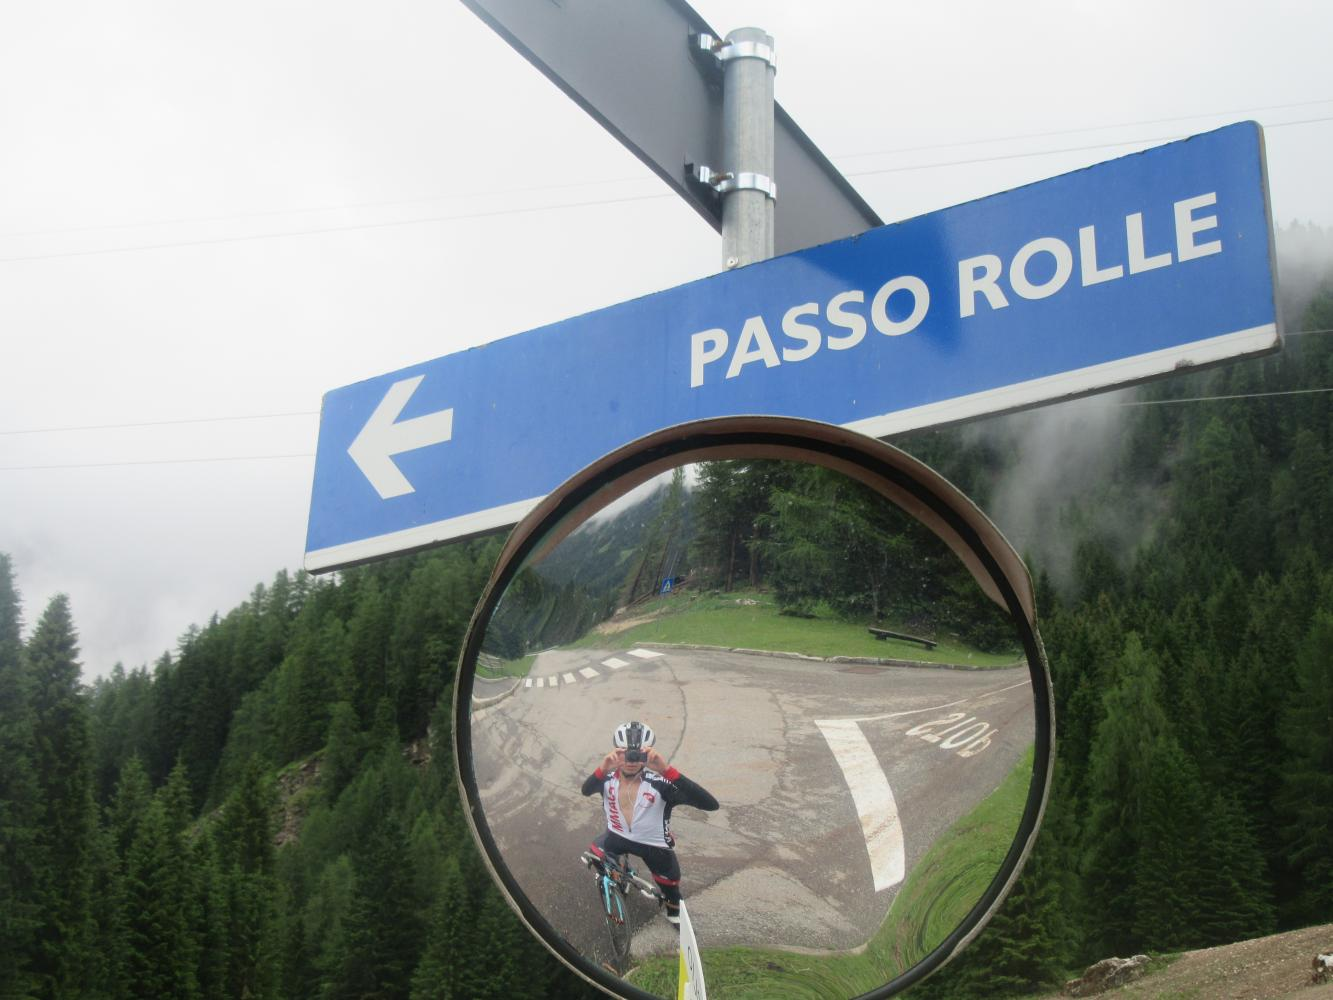 Passo Rolle - Siror Bike Climb - PJAMM Cycling